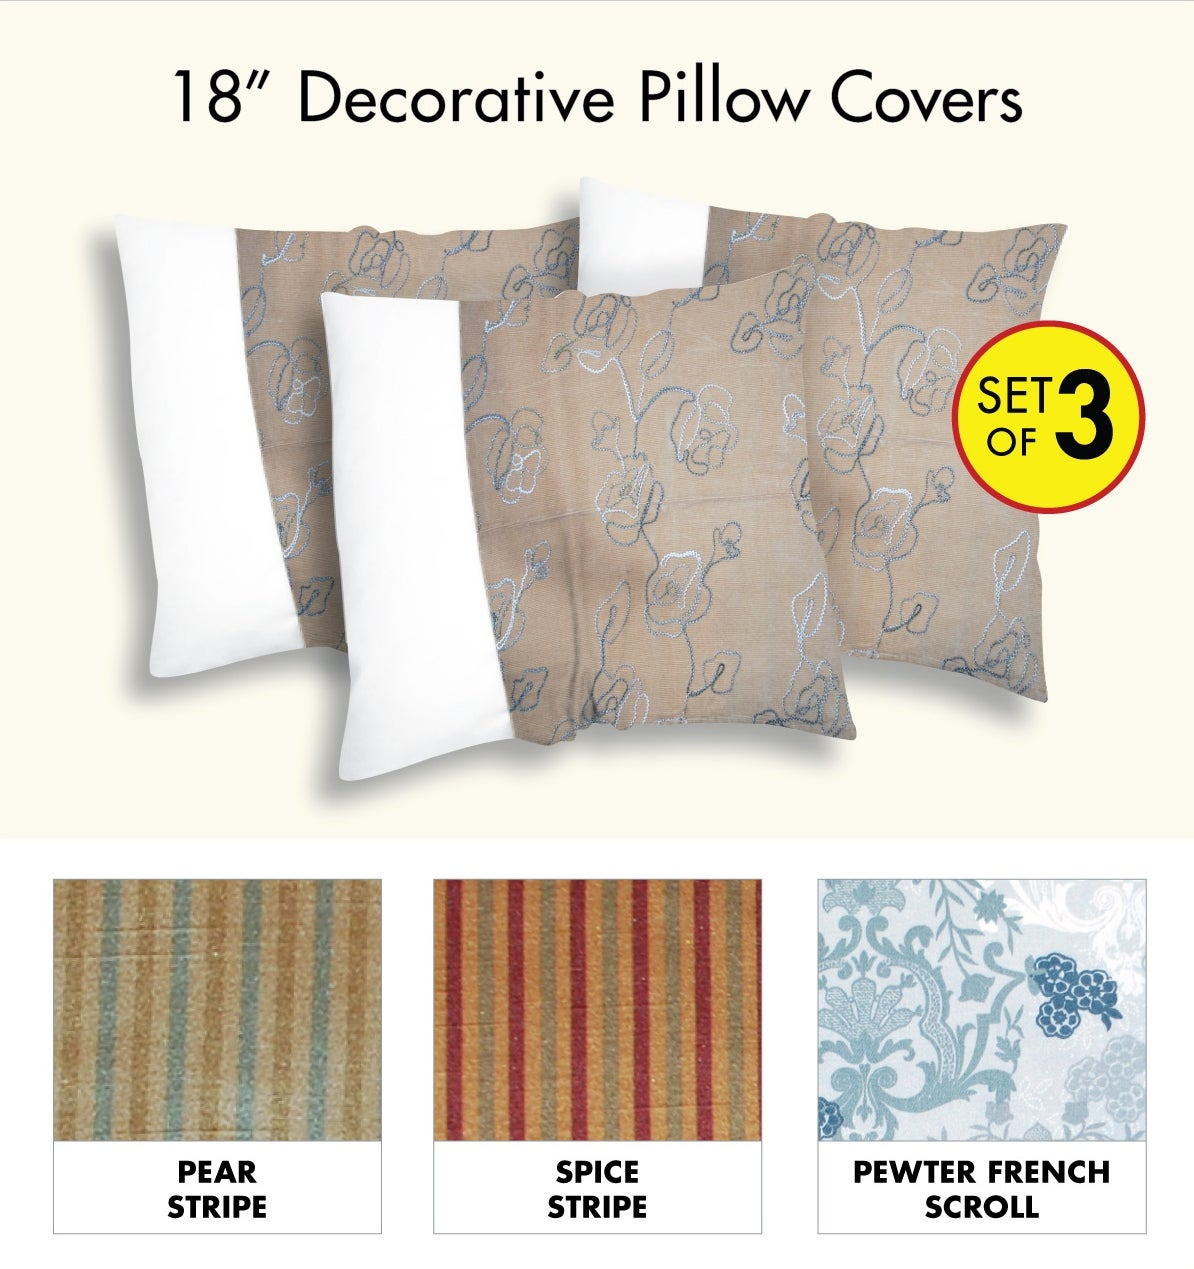 Decorative PIllow Cover (3 piece set)